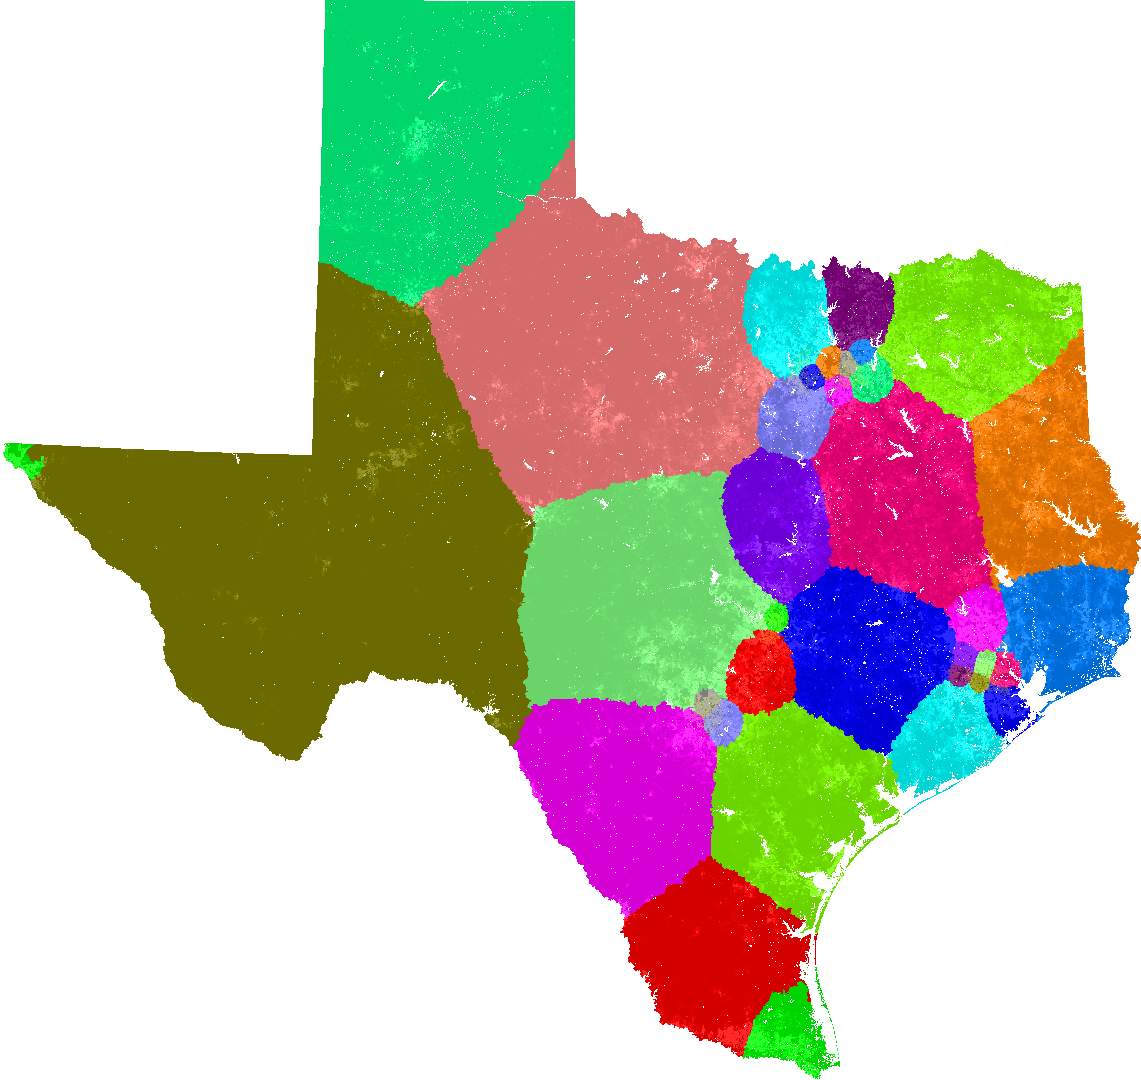 Politics clipart gerrymandering. This is texas congressional